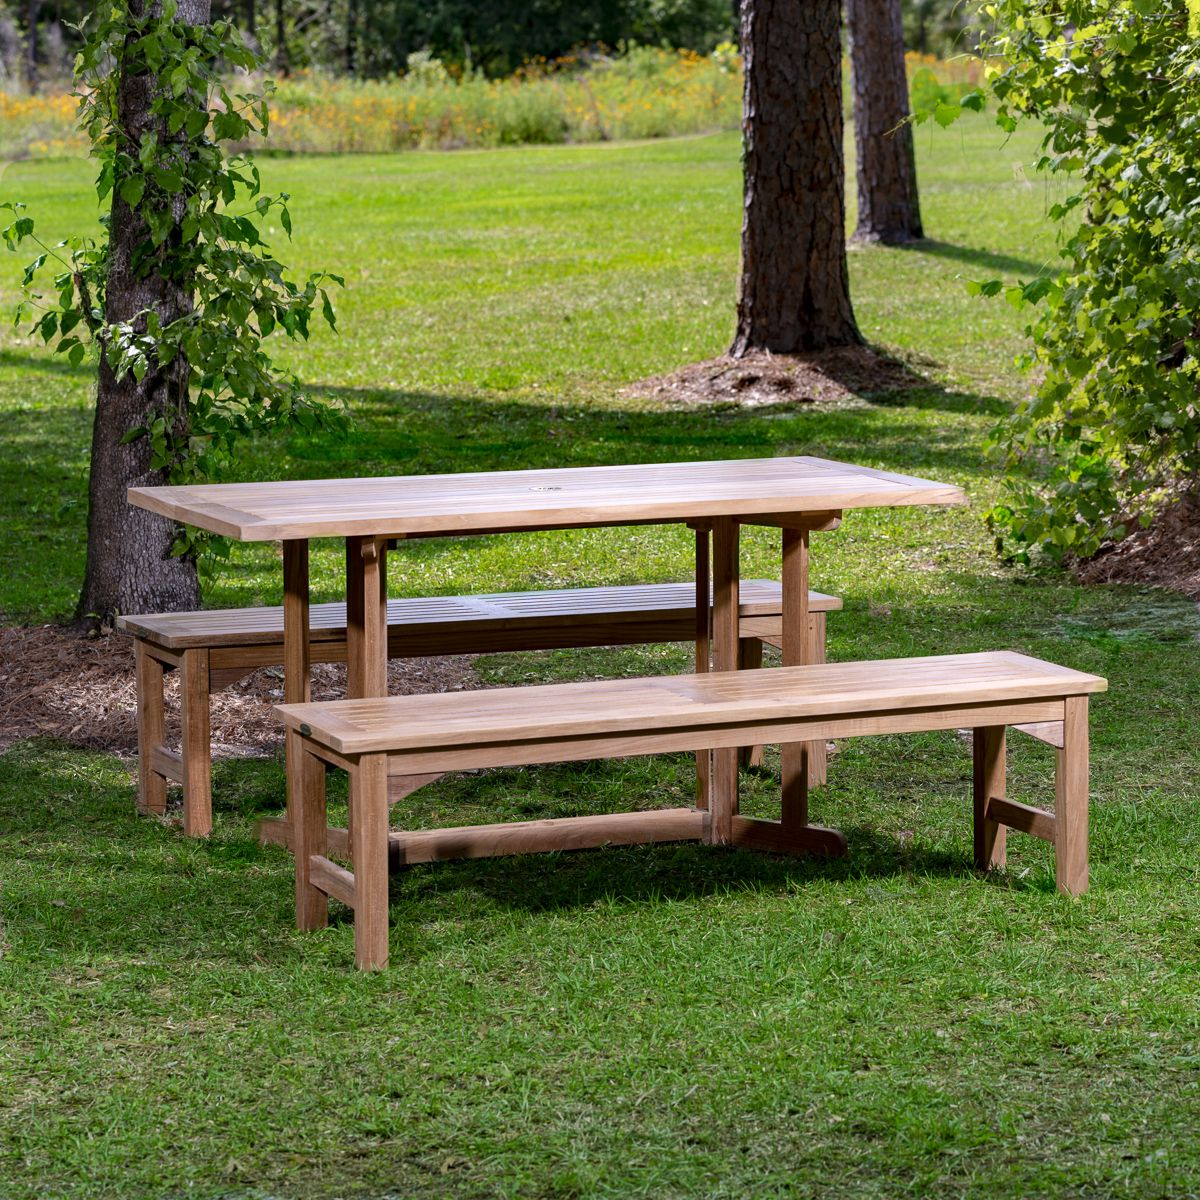 Outdoor Picnic Benches And Picnic Tables Are Crafted To Last